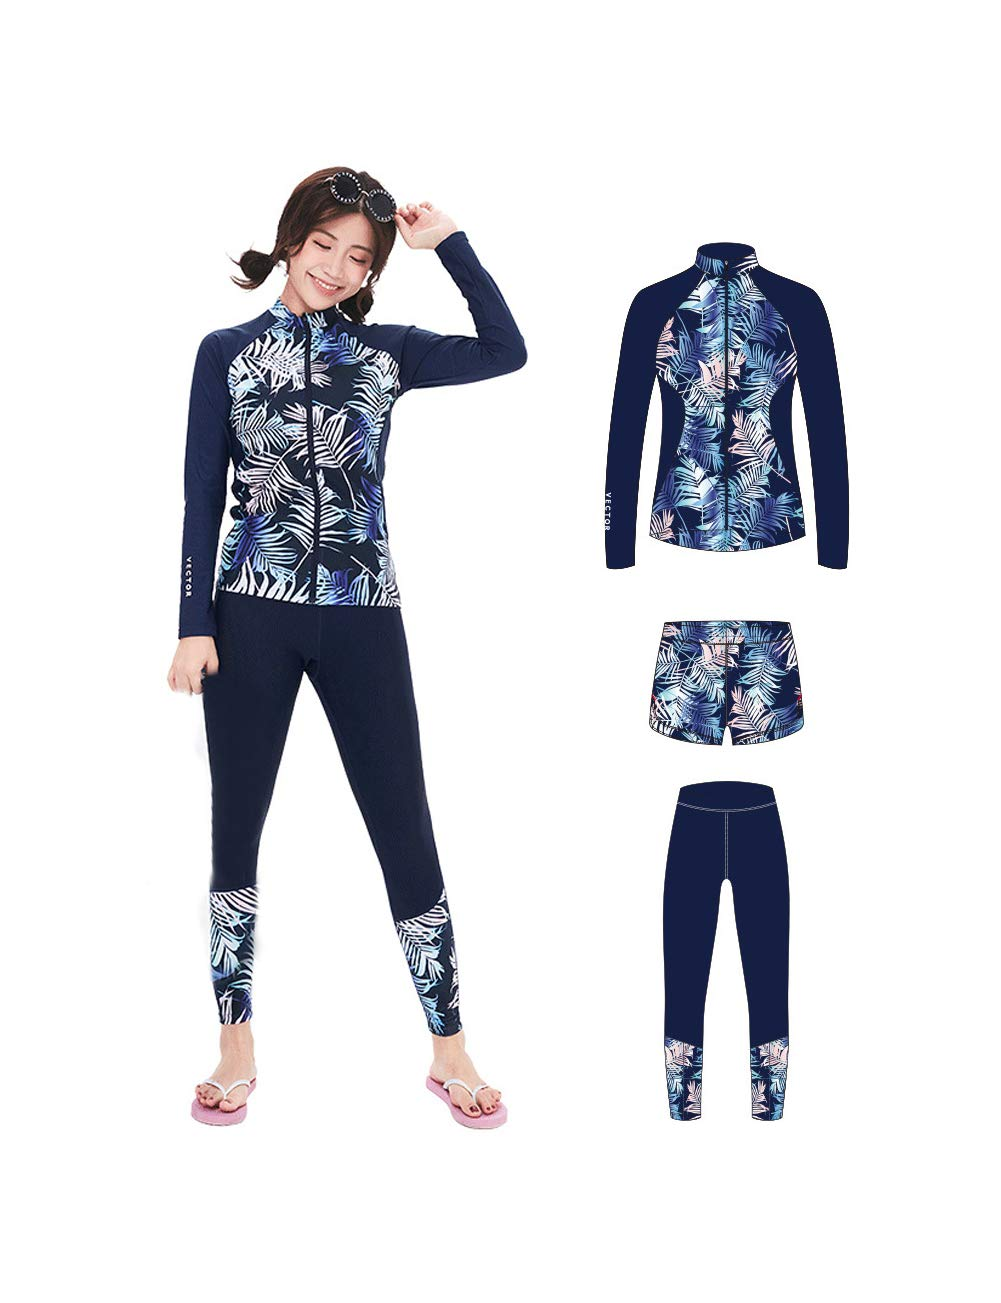 VECTOR 3 Pcs Women's Wetsuit Long Sleeve Swimsuit Watersports Diving Suits Snorkeling Swimming Sun Protection(D-Cardigan,M)